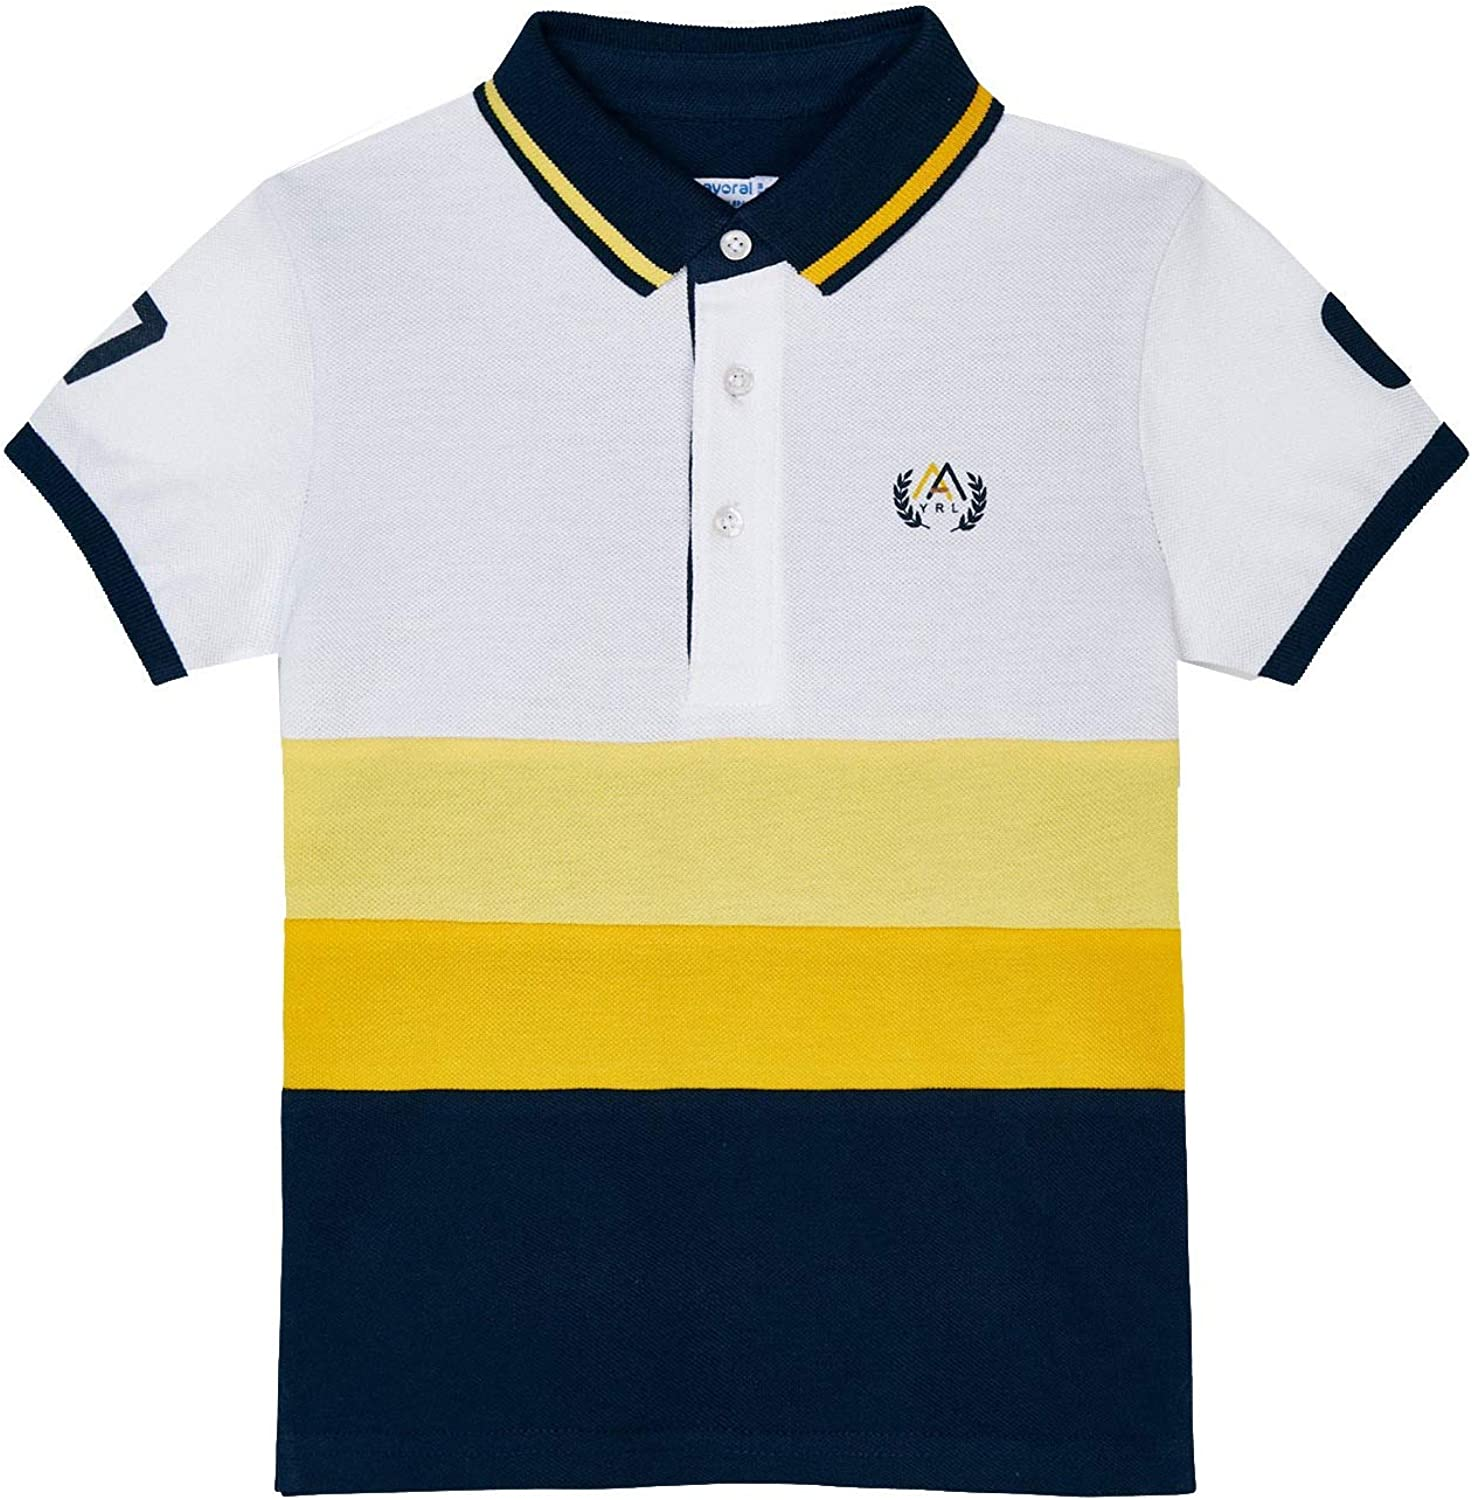 Mayoral - S/s Polo for Boys - 3109, Yellow